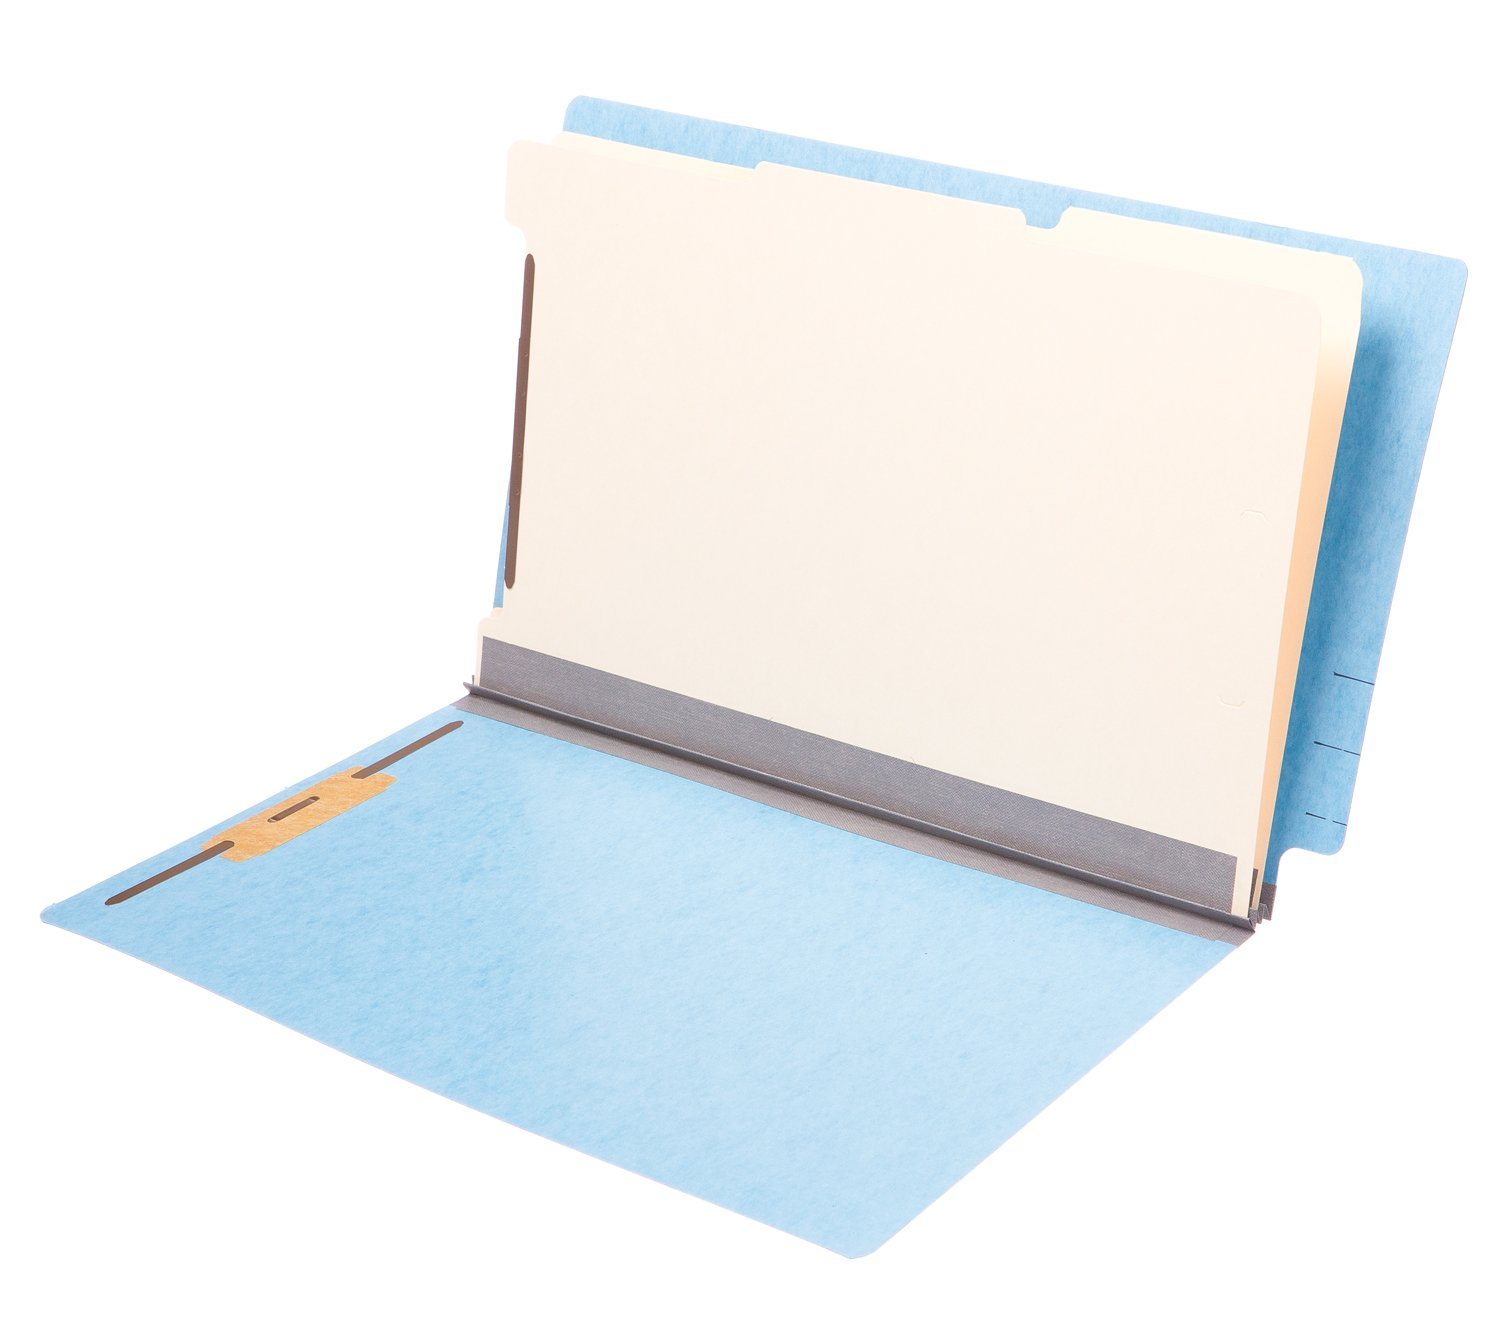 TAB Pressboard Classification Folder 2 Dividers Legal Size Expansion Blue 25/Box by TAB